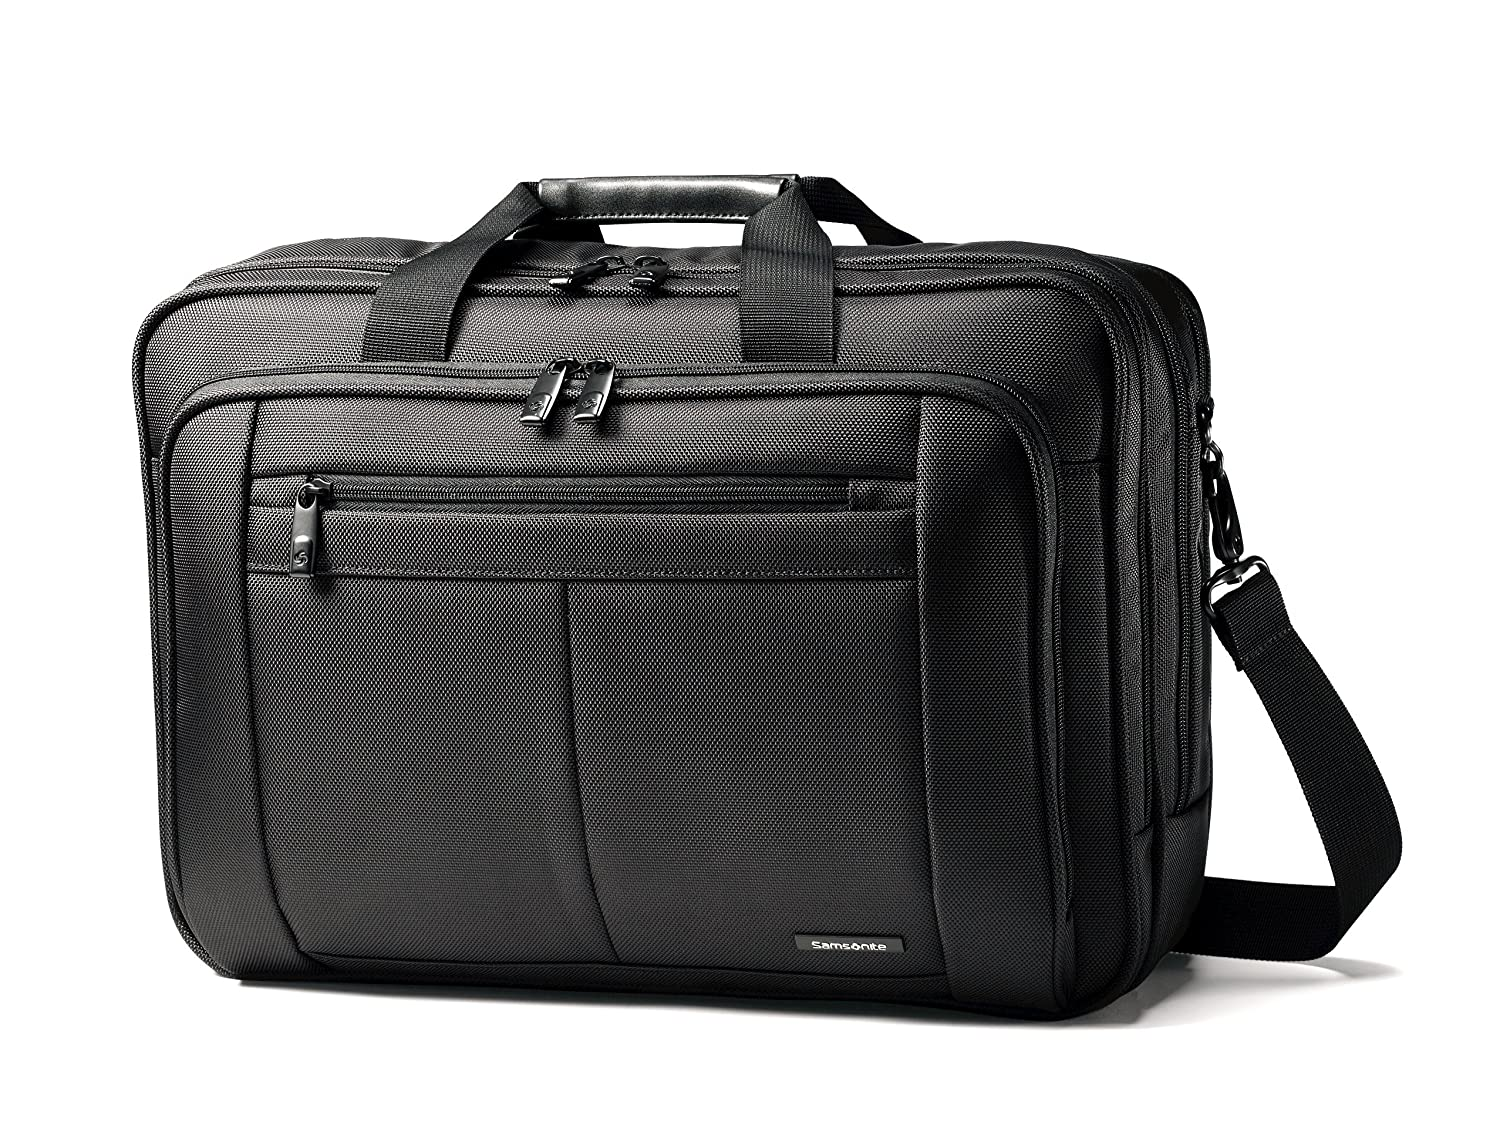 Samsonite Classic Business Three-Gusset Briefcase (15.6), Black 43270-1041